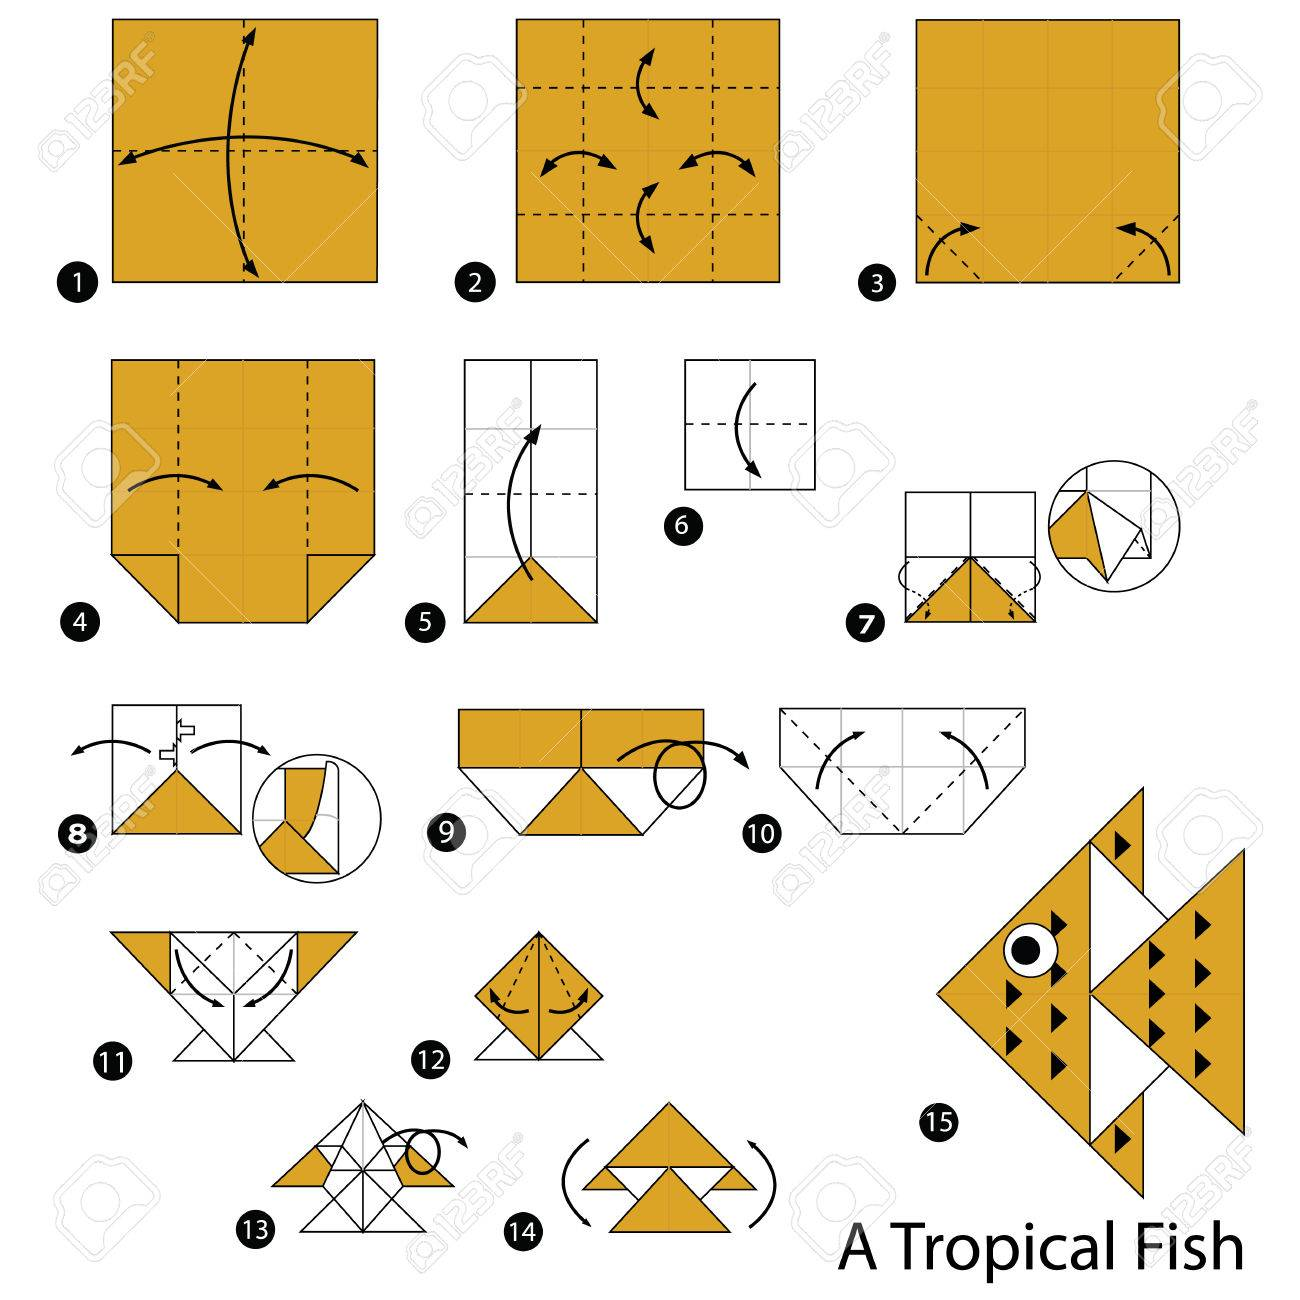 Step by step instructions how to make origami a tropical fish step by step instructions how to make origami a tropical fish stock vector 71139431 jeuxipadfo Images